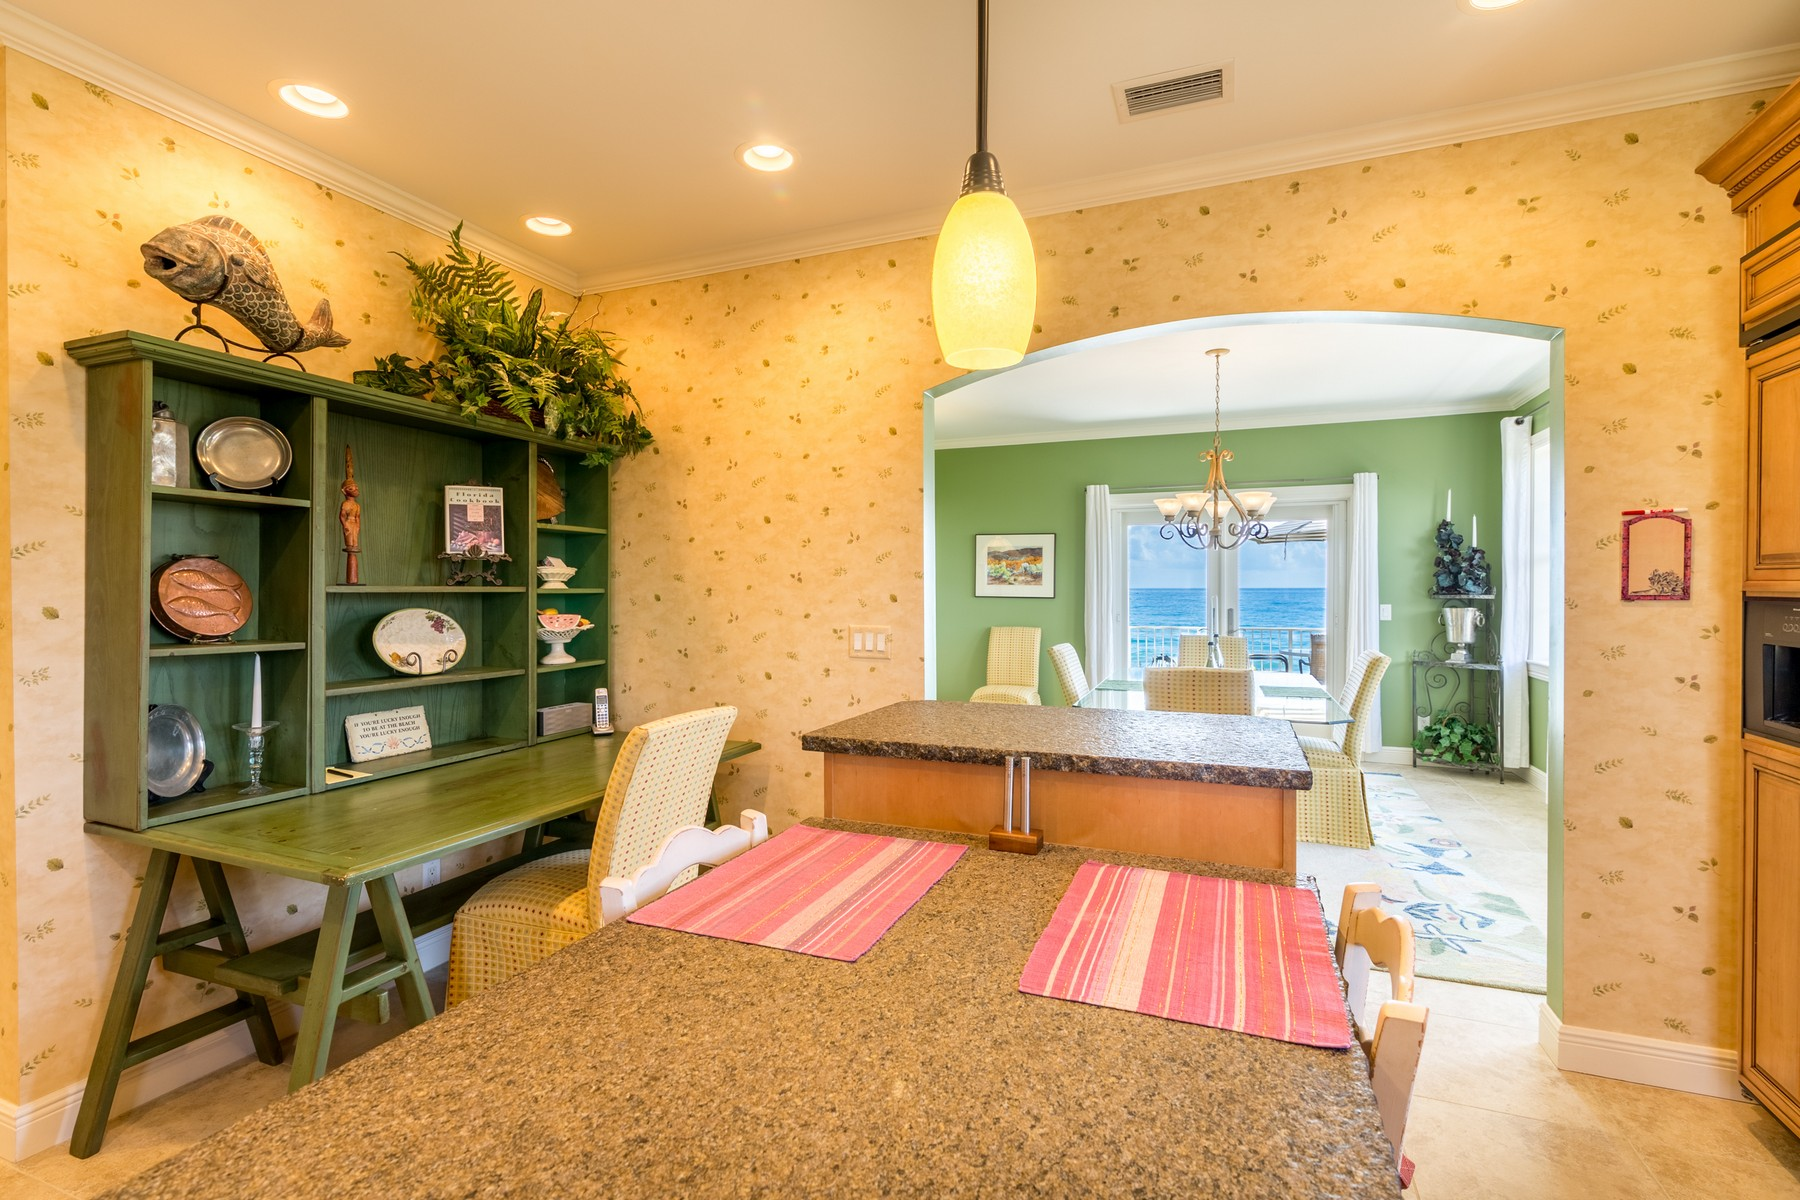 """Additional photo for property listing at The Iconic """"Spanish House"""" in South Melbourne Beach near Sebastian Inlet 9515 S Highway A1A Melbourne Beach, Florida 32951 United States"""